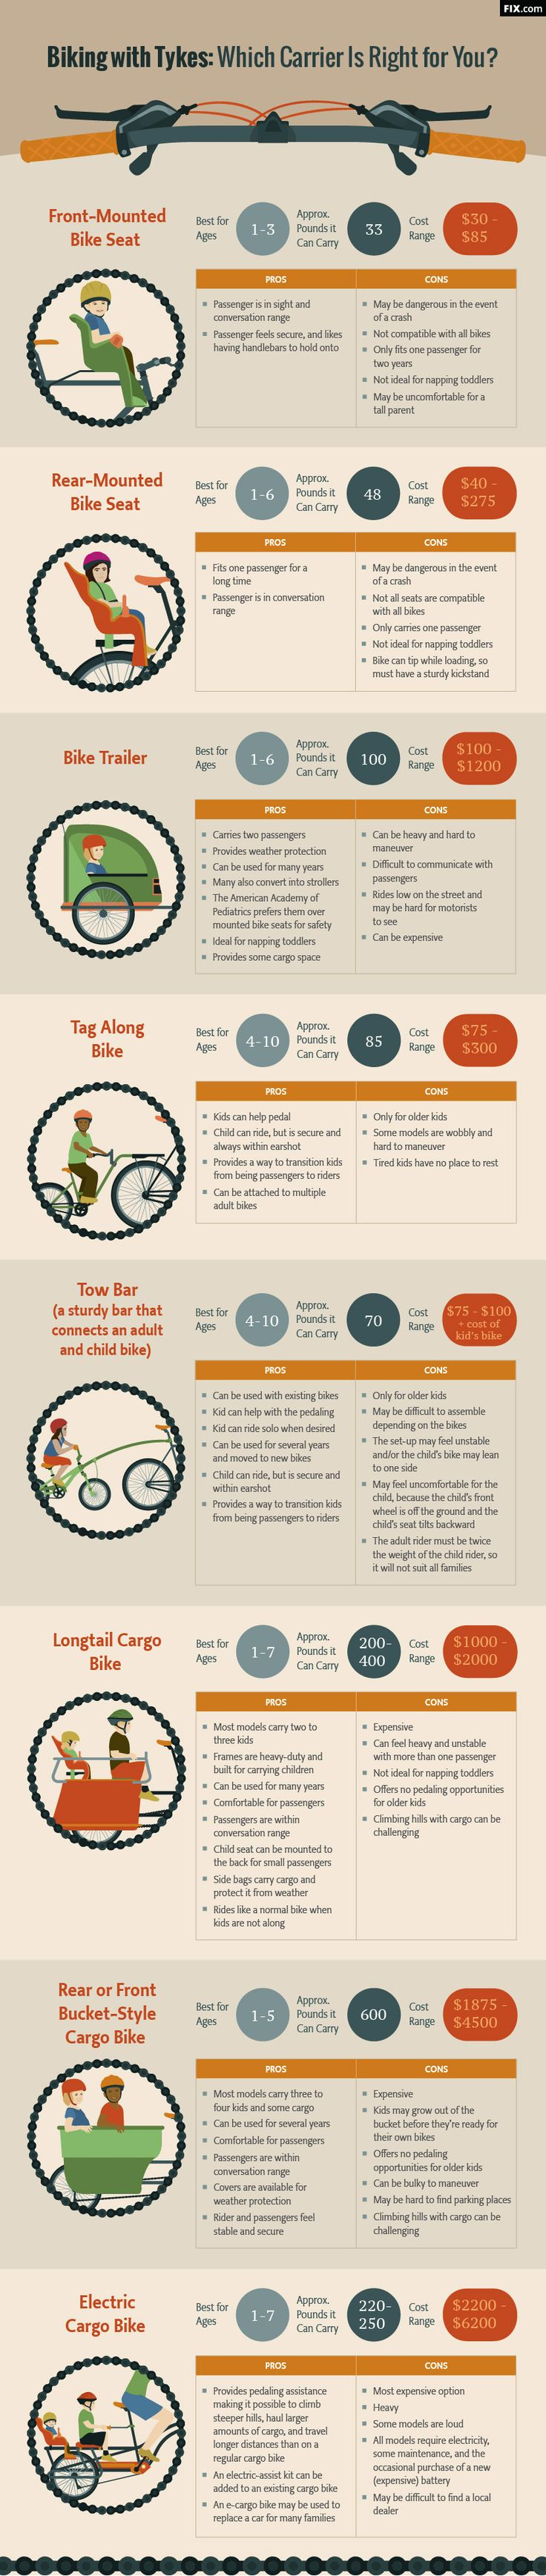 Infographic about how to safely transport your kids on bikes courtesy of Fix.com